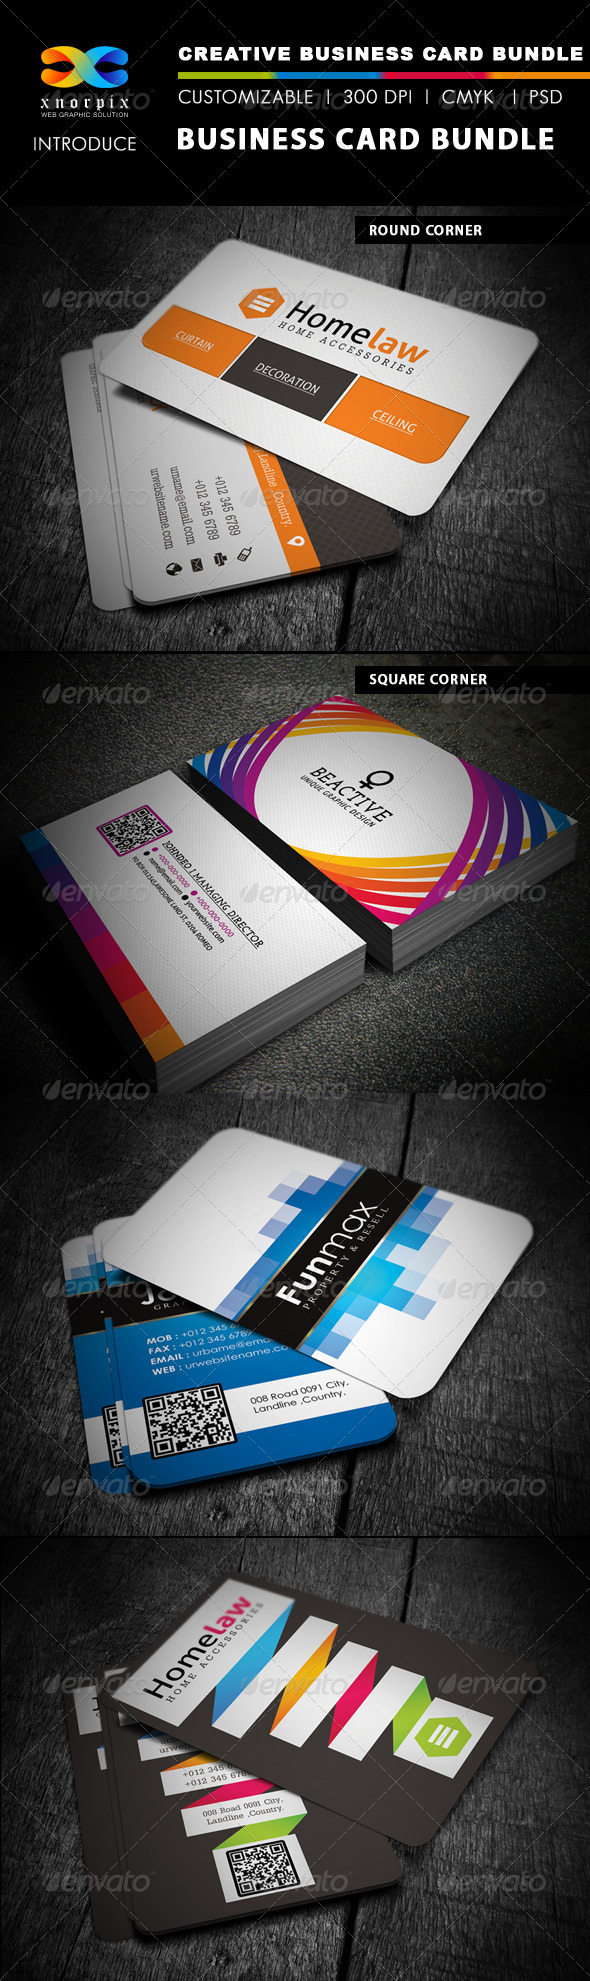 GraphicRiver Business Card Bundle 4 in 1-Vol 2 4904219